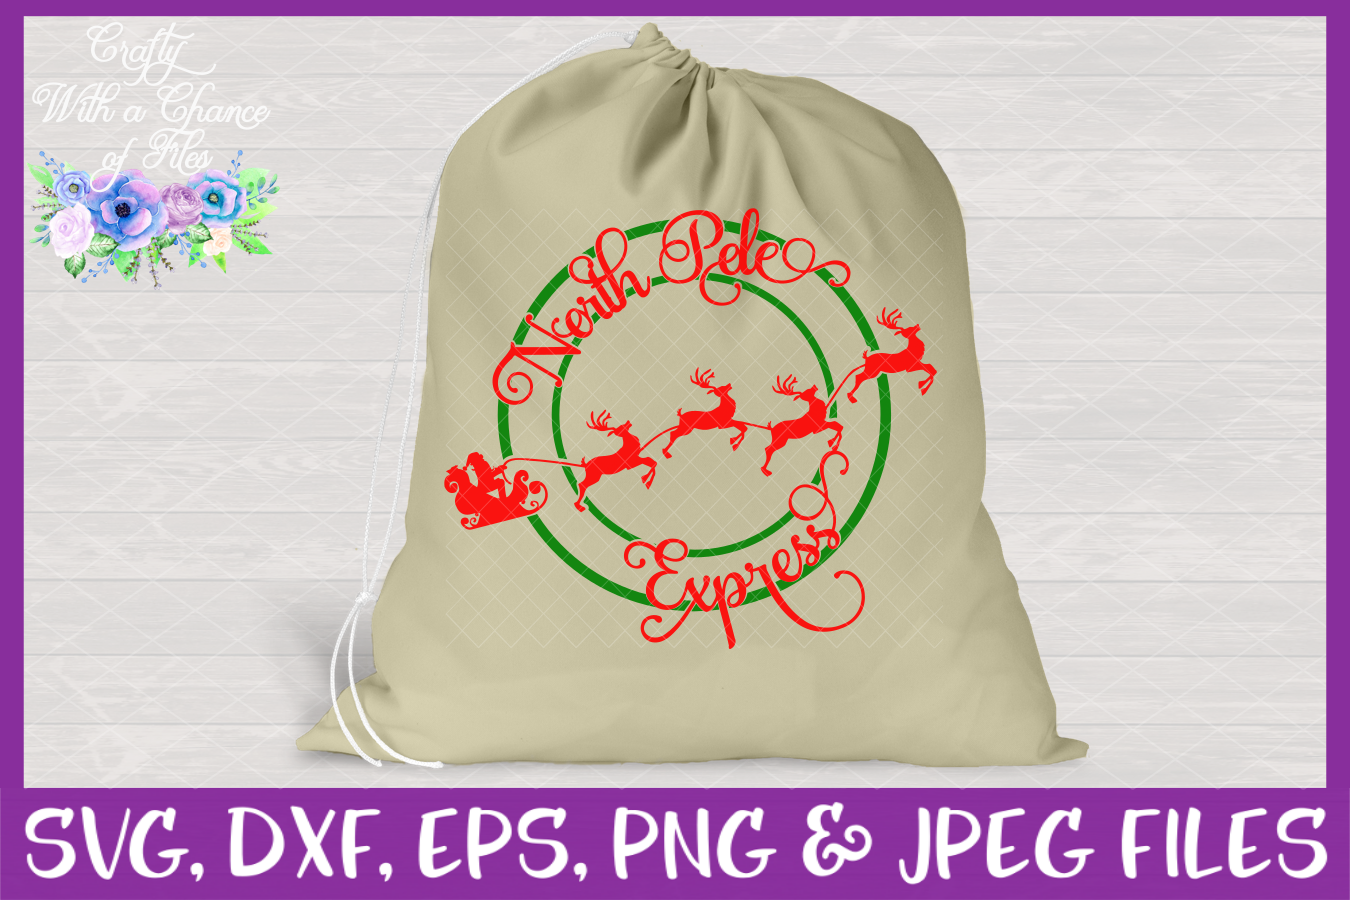 North Pole Express SVG - Christmas Design example image 3